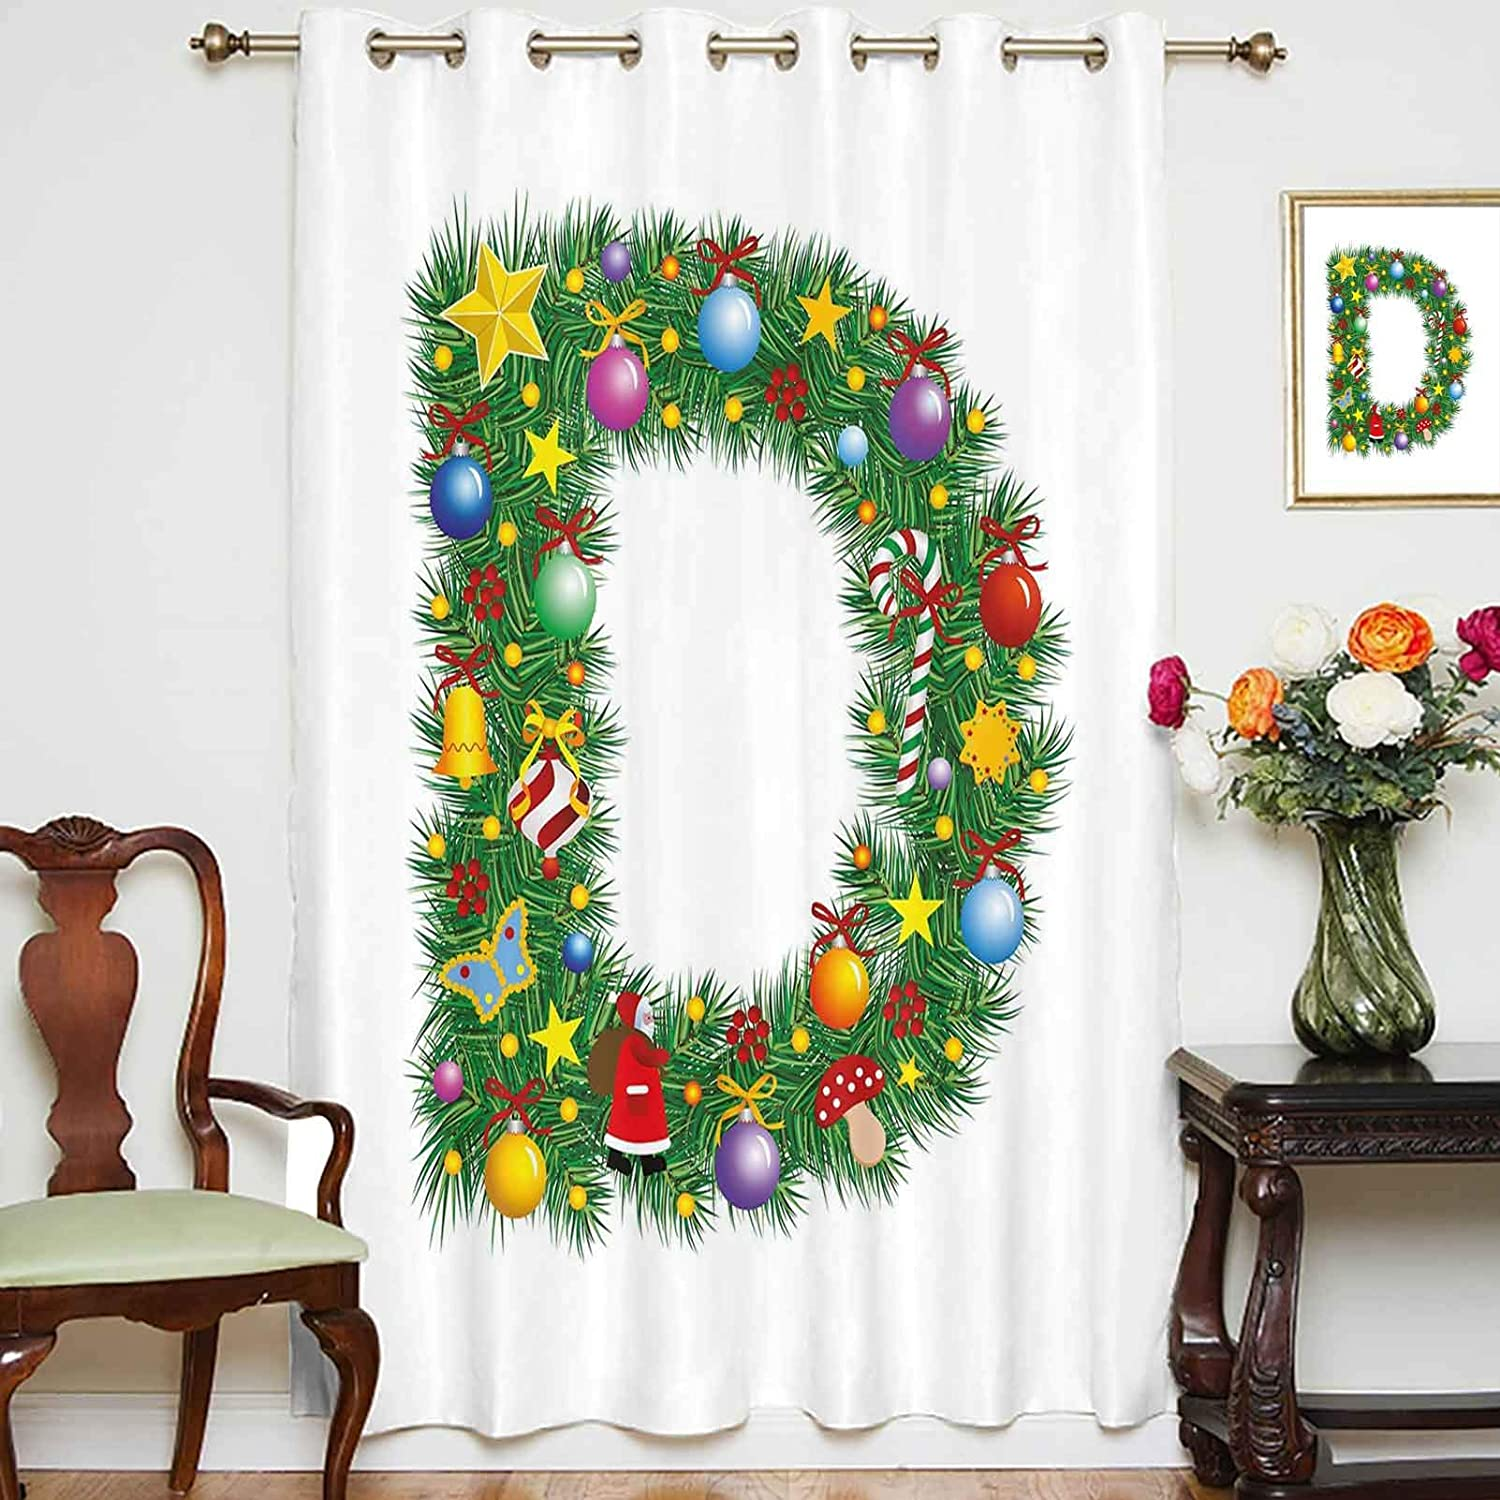 El Paso Mall Direct stock discount oobon Blackout Shading Curtains Pine Pattern with Vibrant C Tree